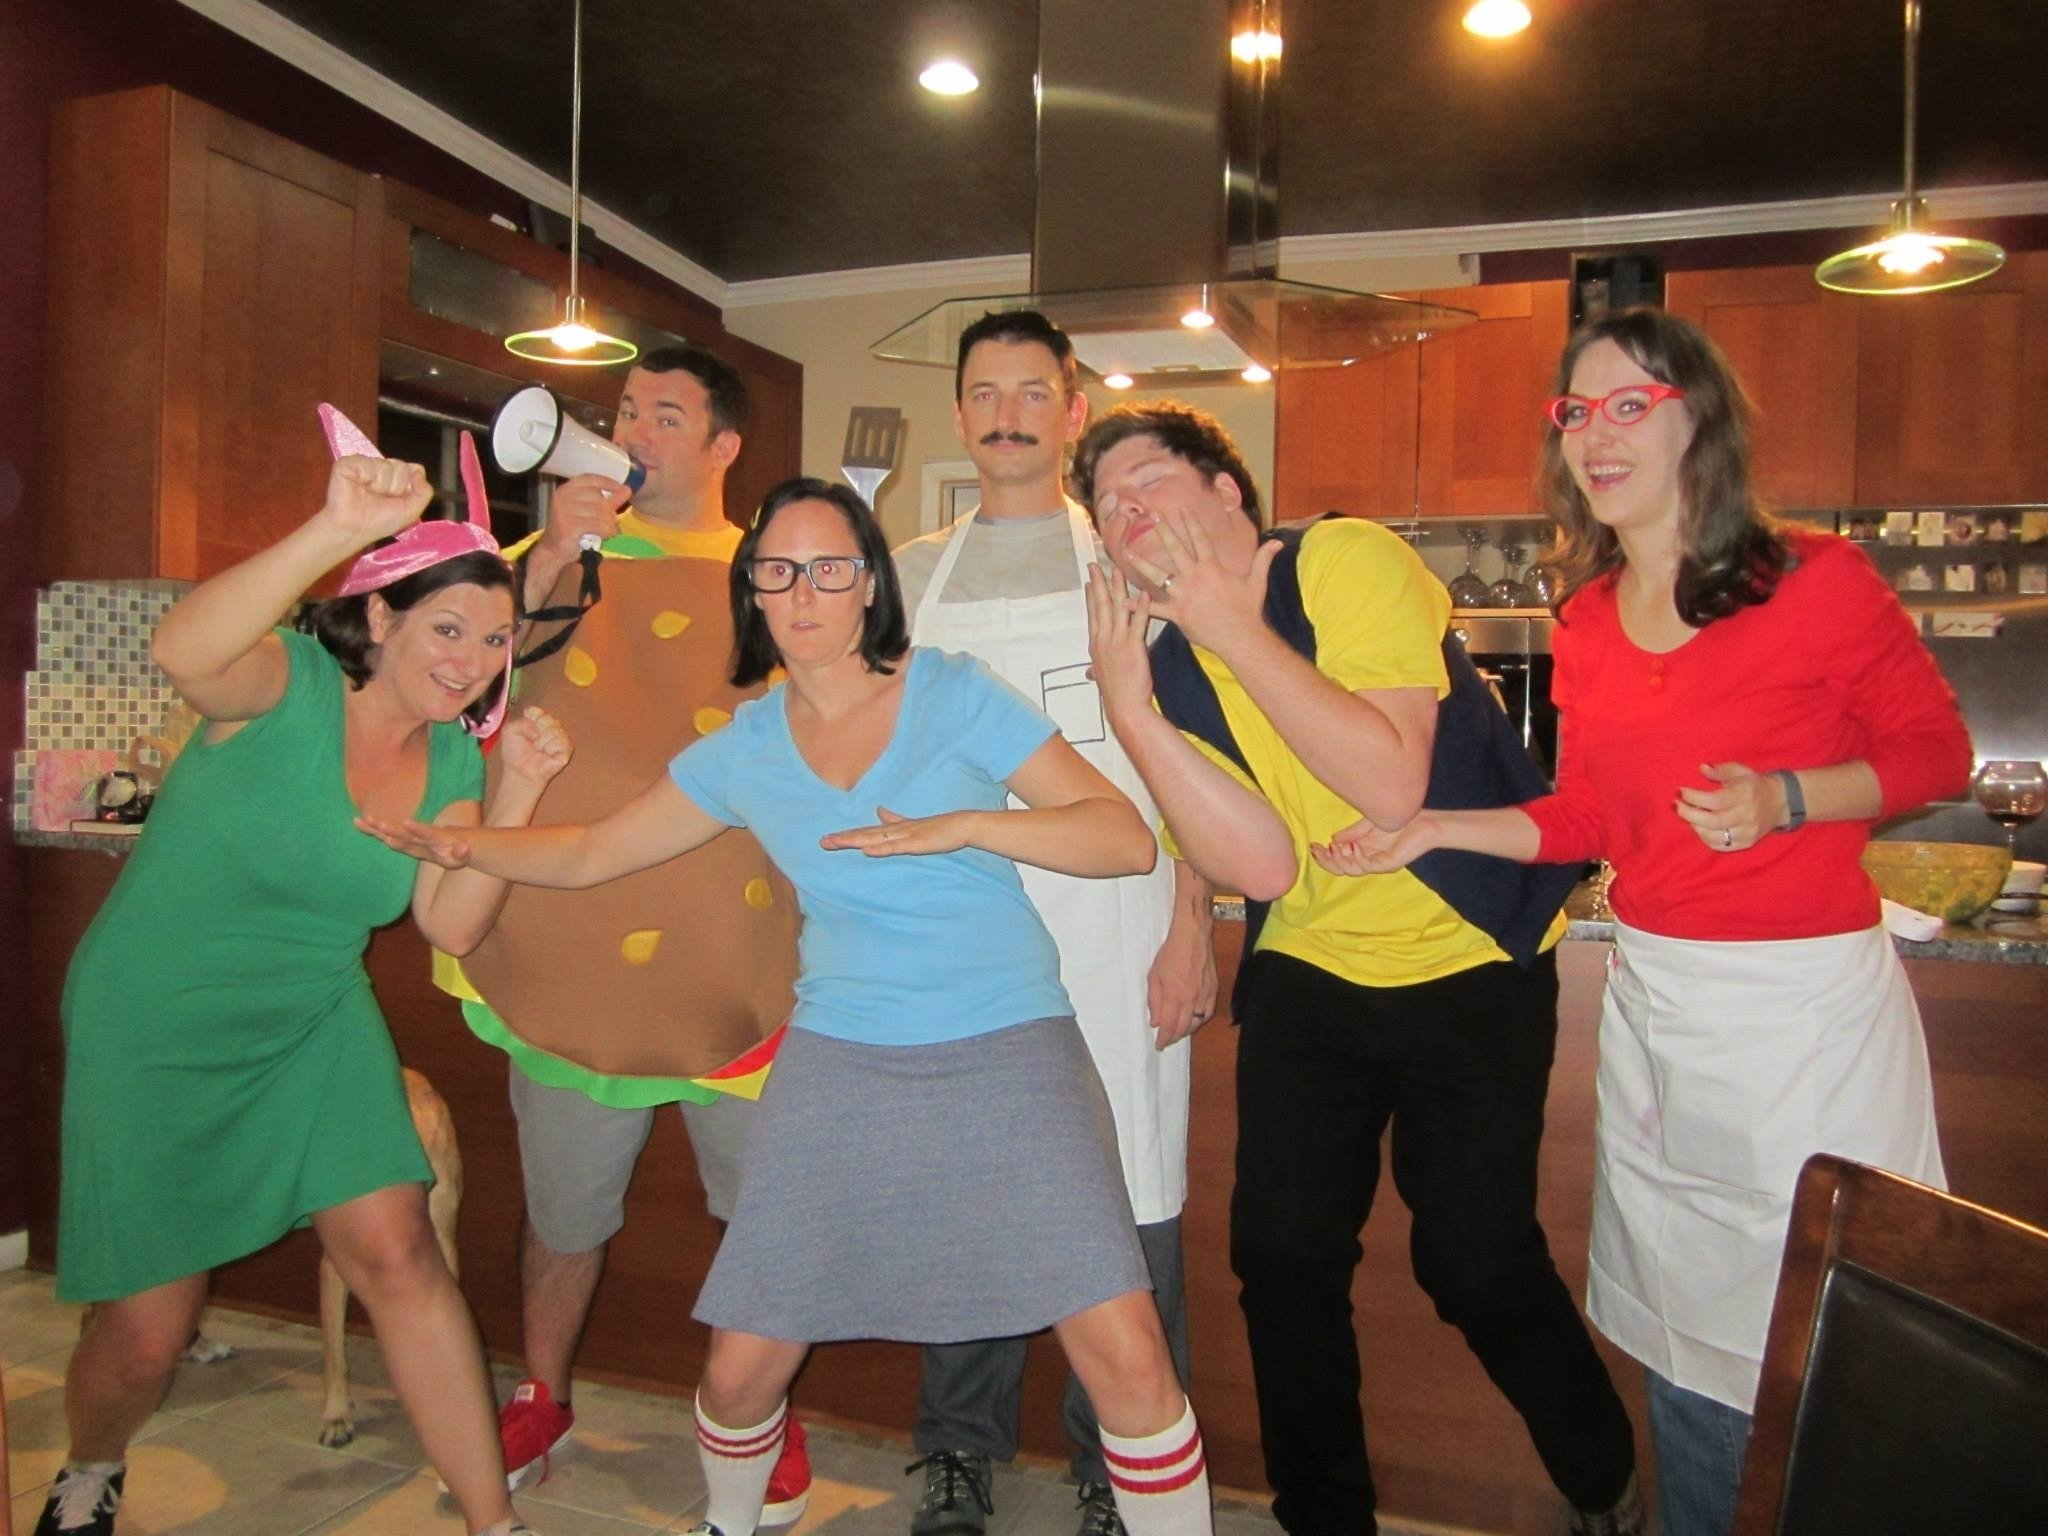 10 Best Group Costume Ideas For 4 People 4 people costume ideas best costumes ideas reviews